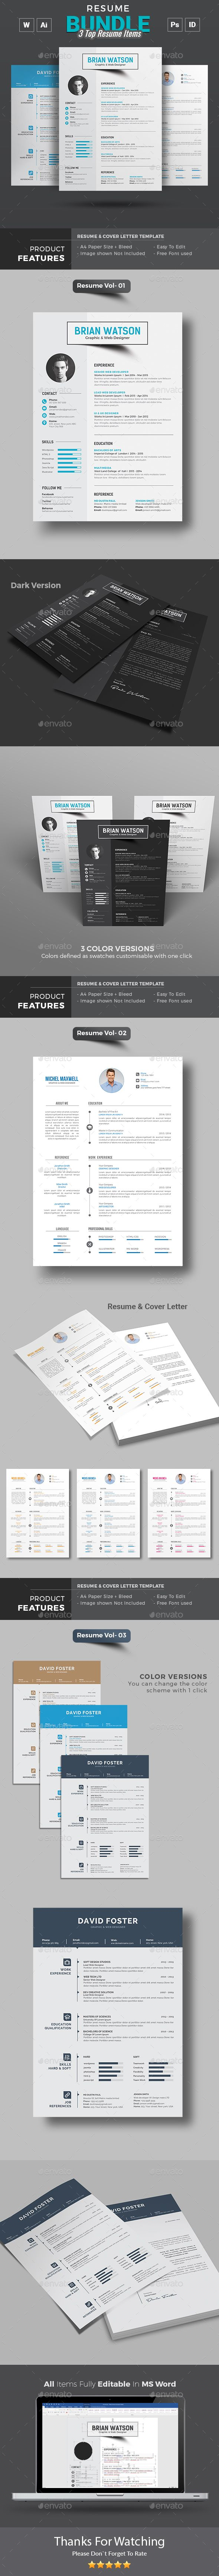 Simple Resume Format in Word | Light and Dark color versions | 3 ...